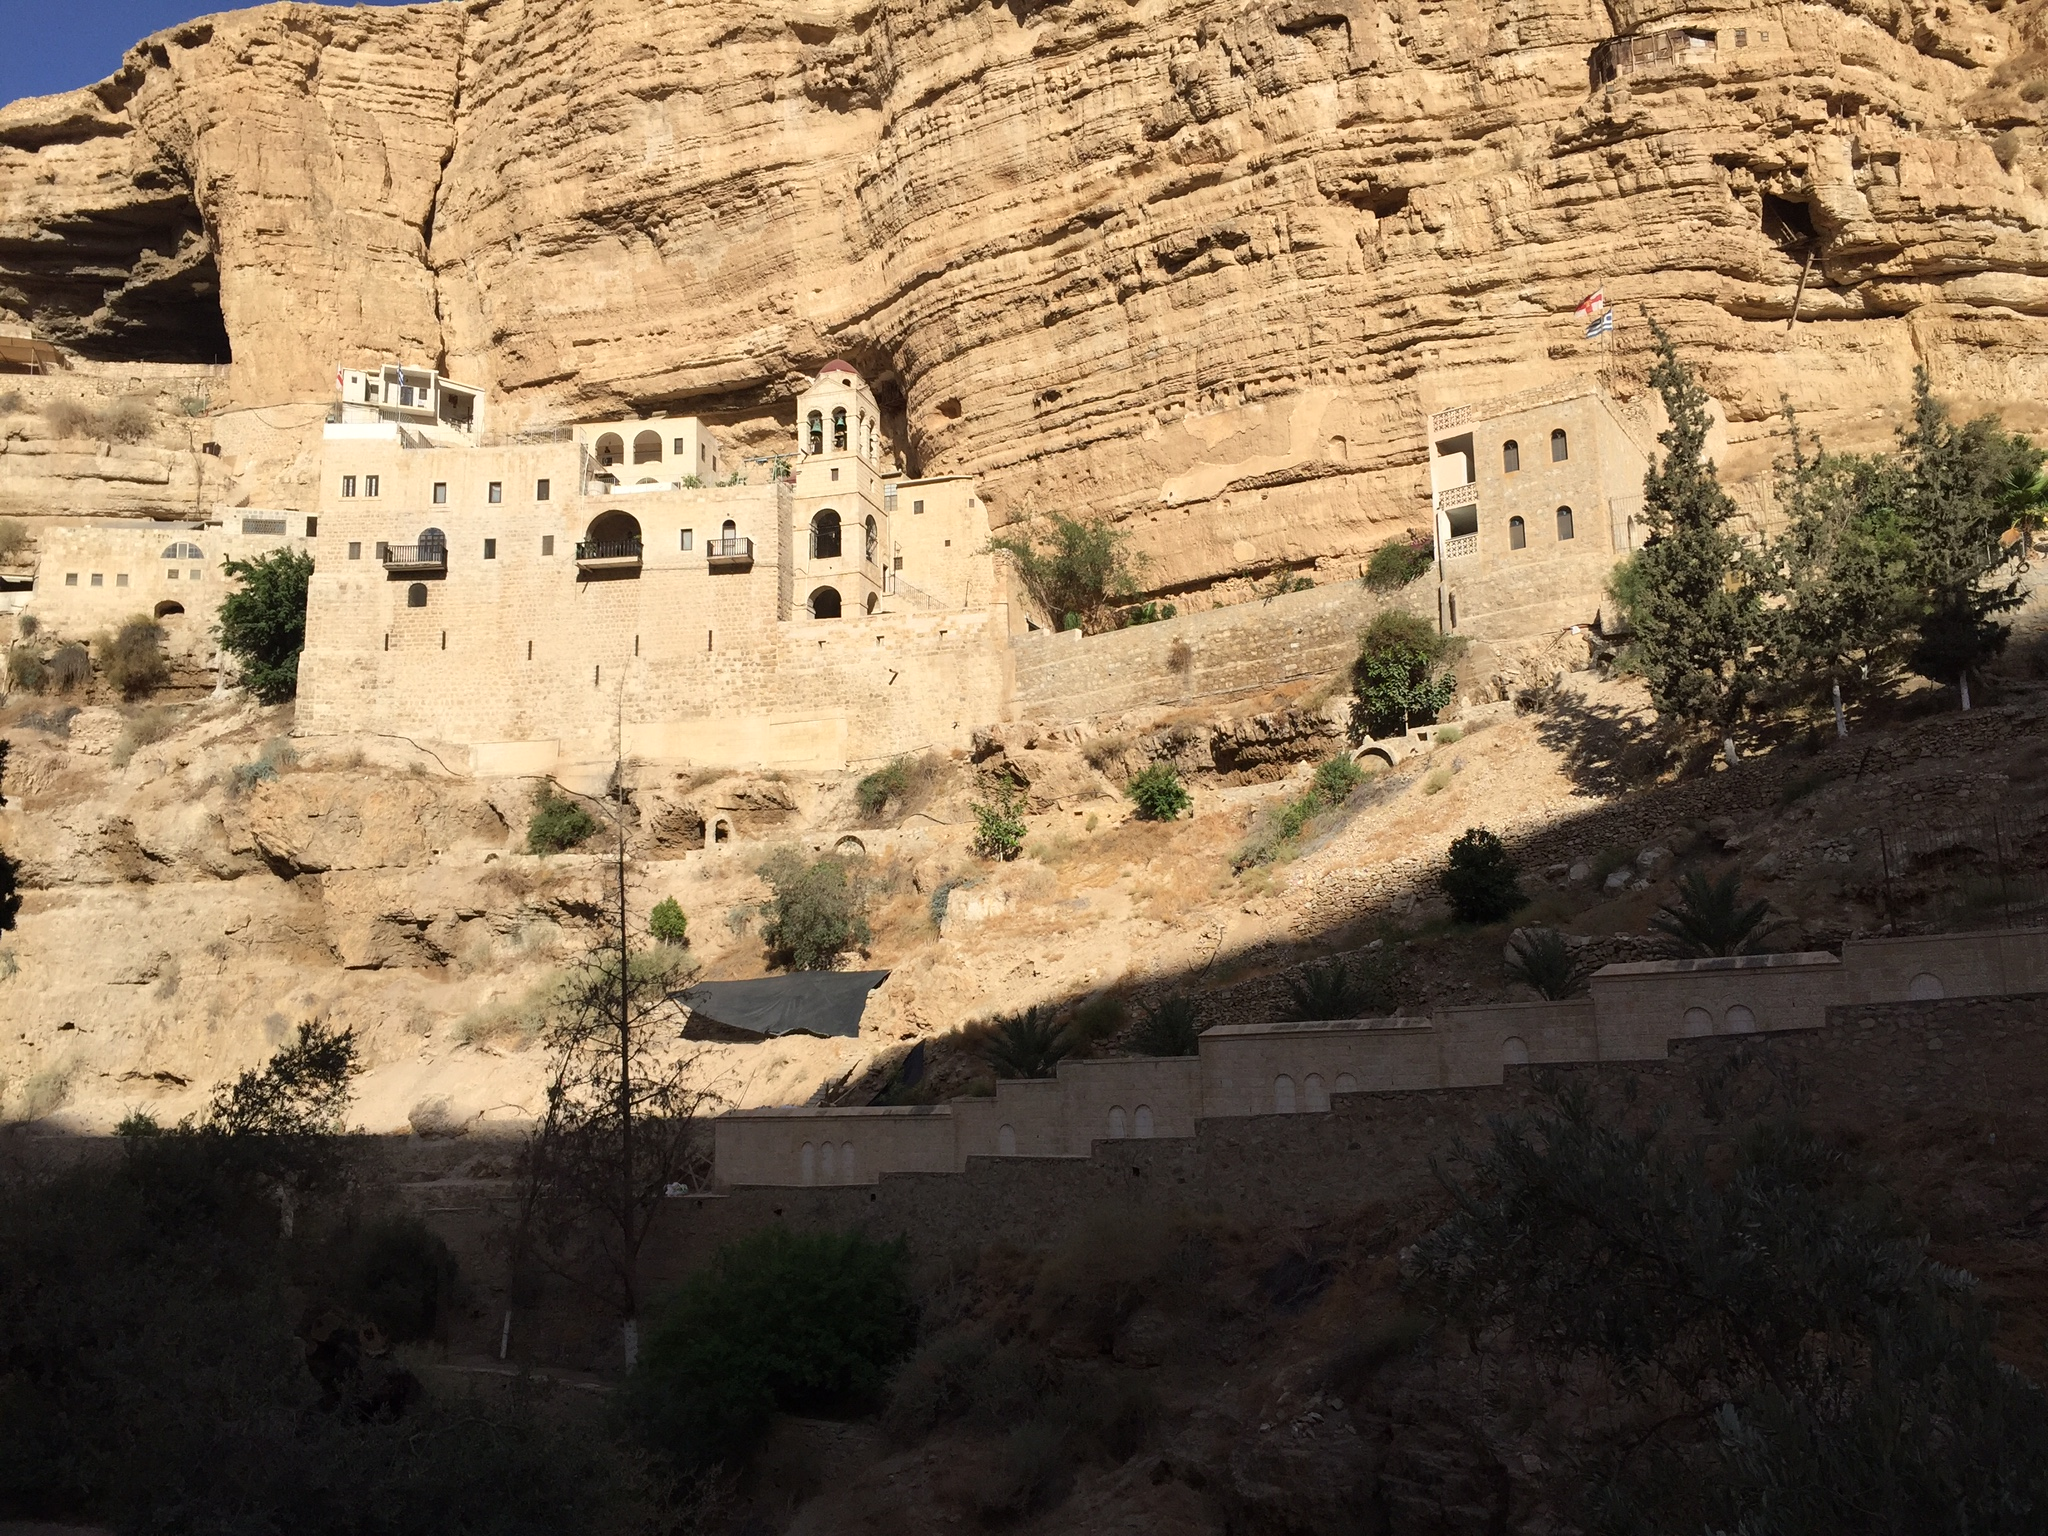 Day 10: Jericho, Dead Sea, St. George's Monastery in the Judean Desert